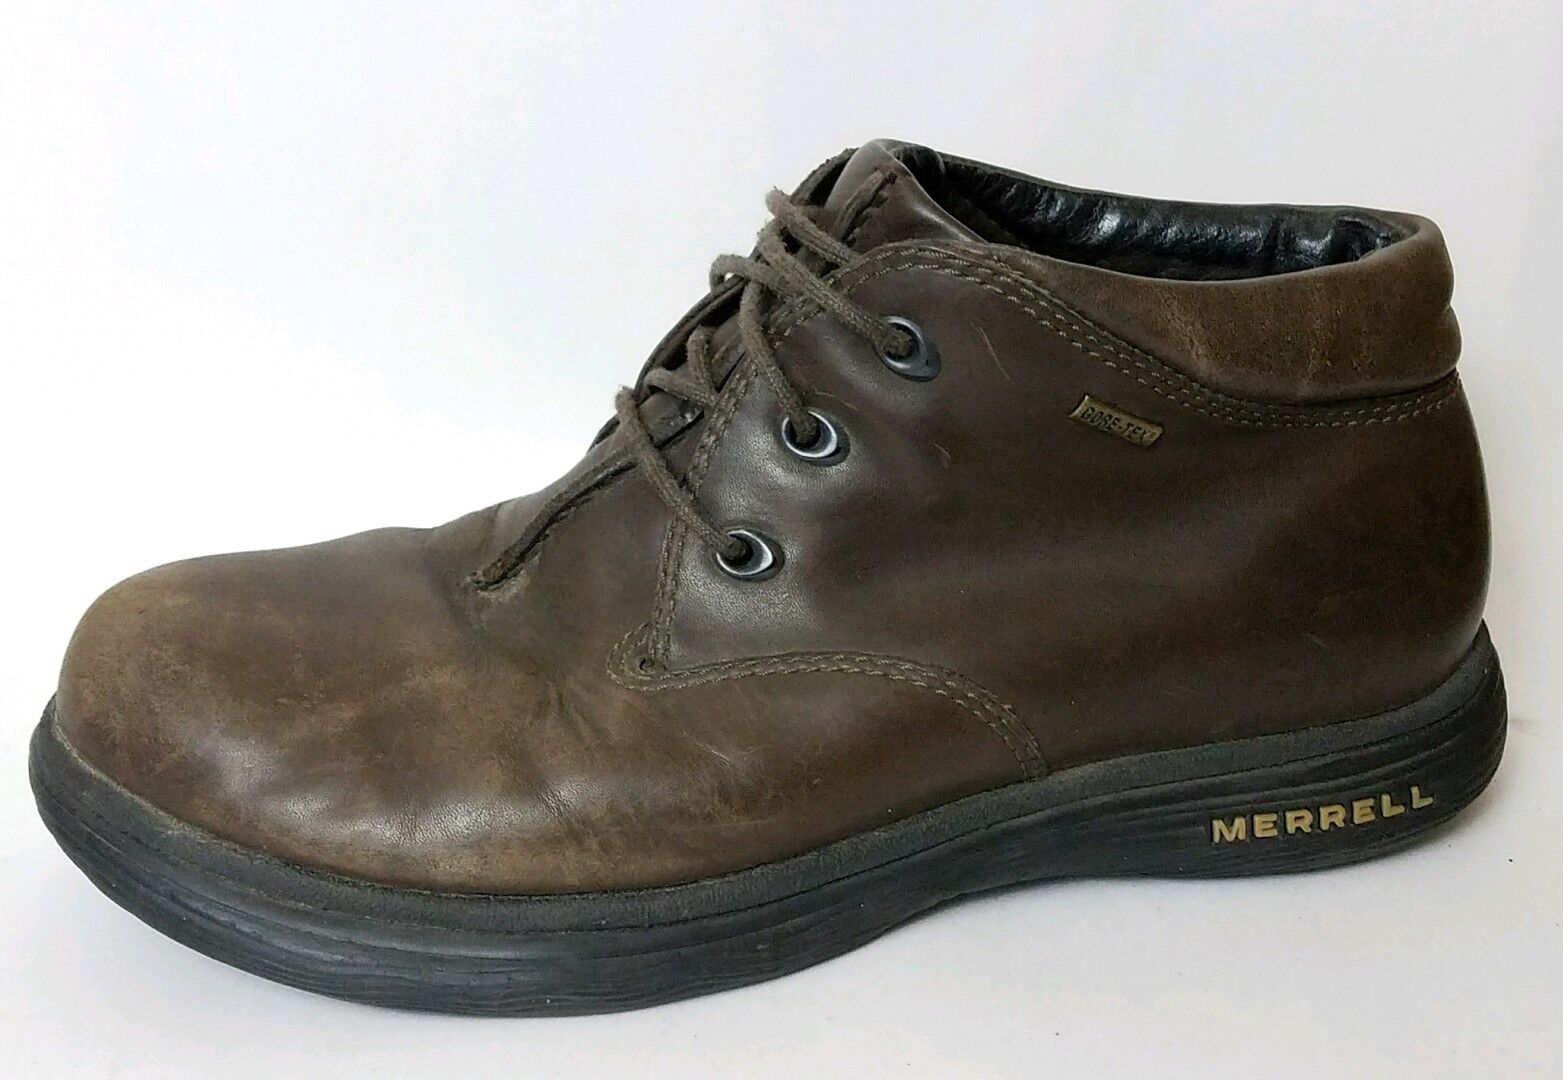 Merrell Topo Storm Mens 8 M Brown Ankle Work Hiking Trail Boots Gore Tex Leather